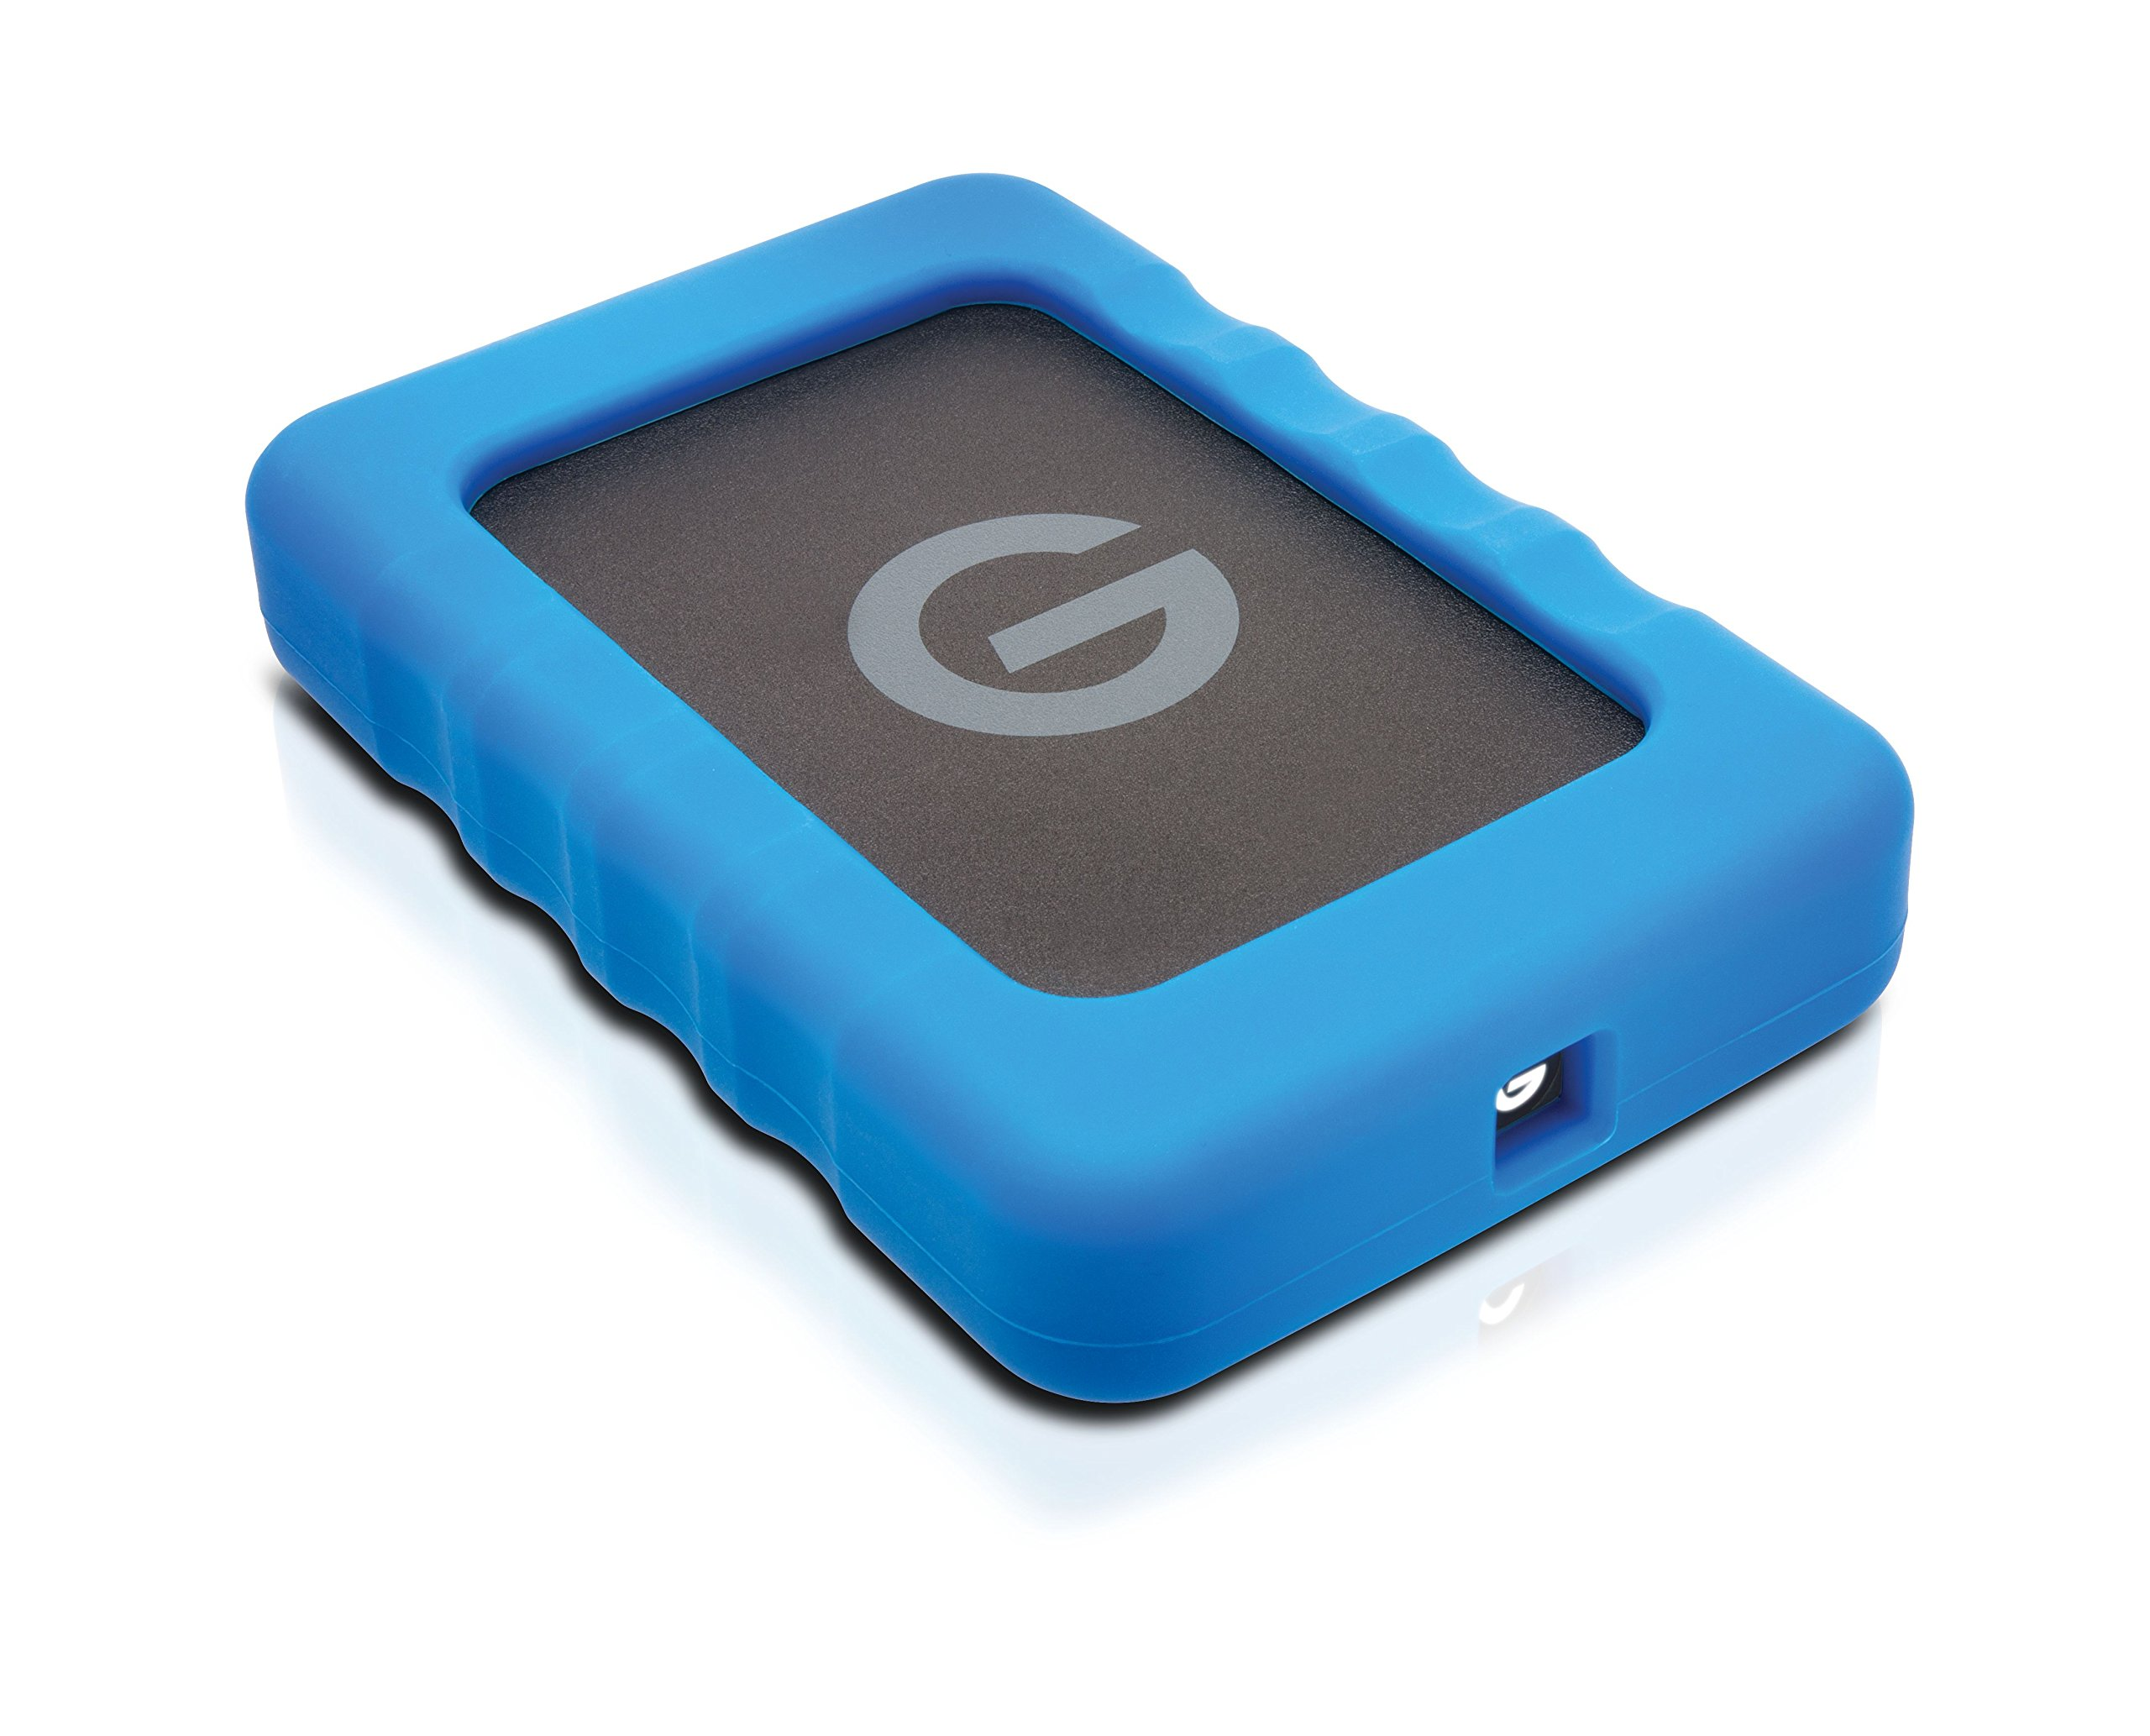 G-DRIVE ev RaW (with Rugged Bumper) 4TB by G-Technology